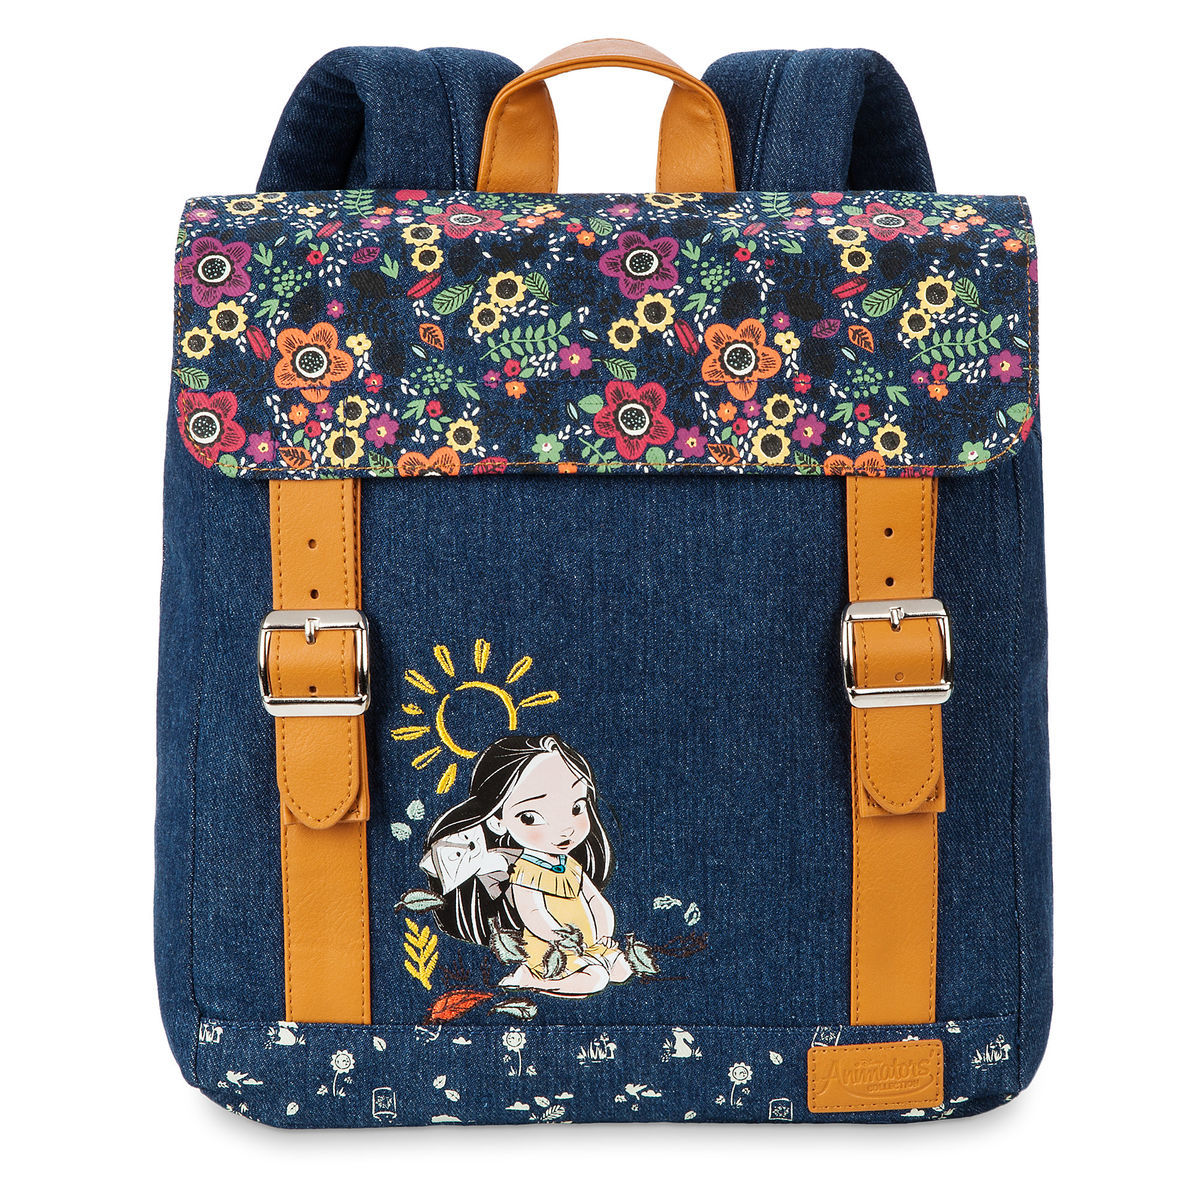 Product Image Of Disney Animators Collection Pocahontas Fashion Backpack For Kids 1